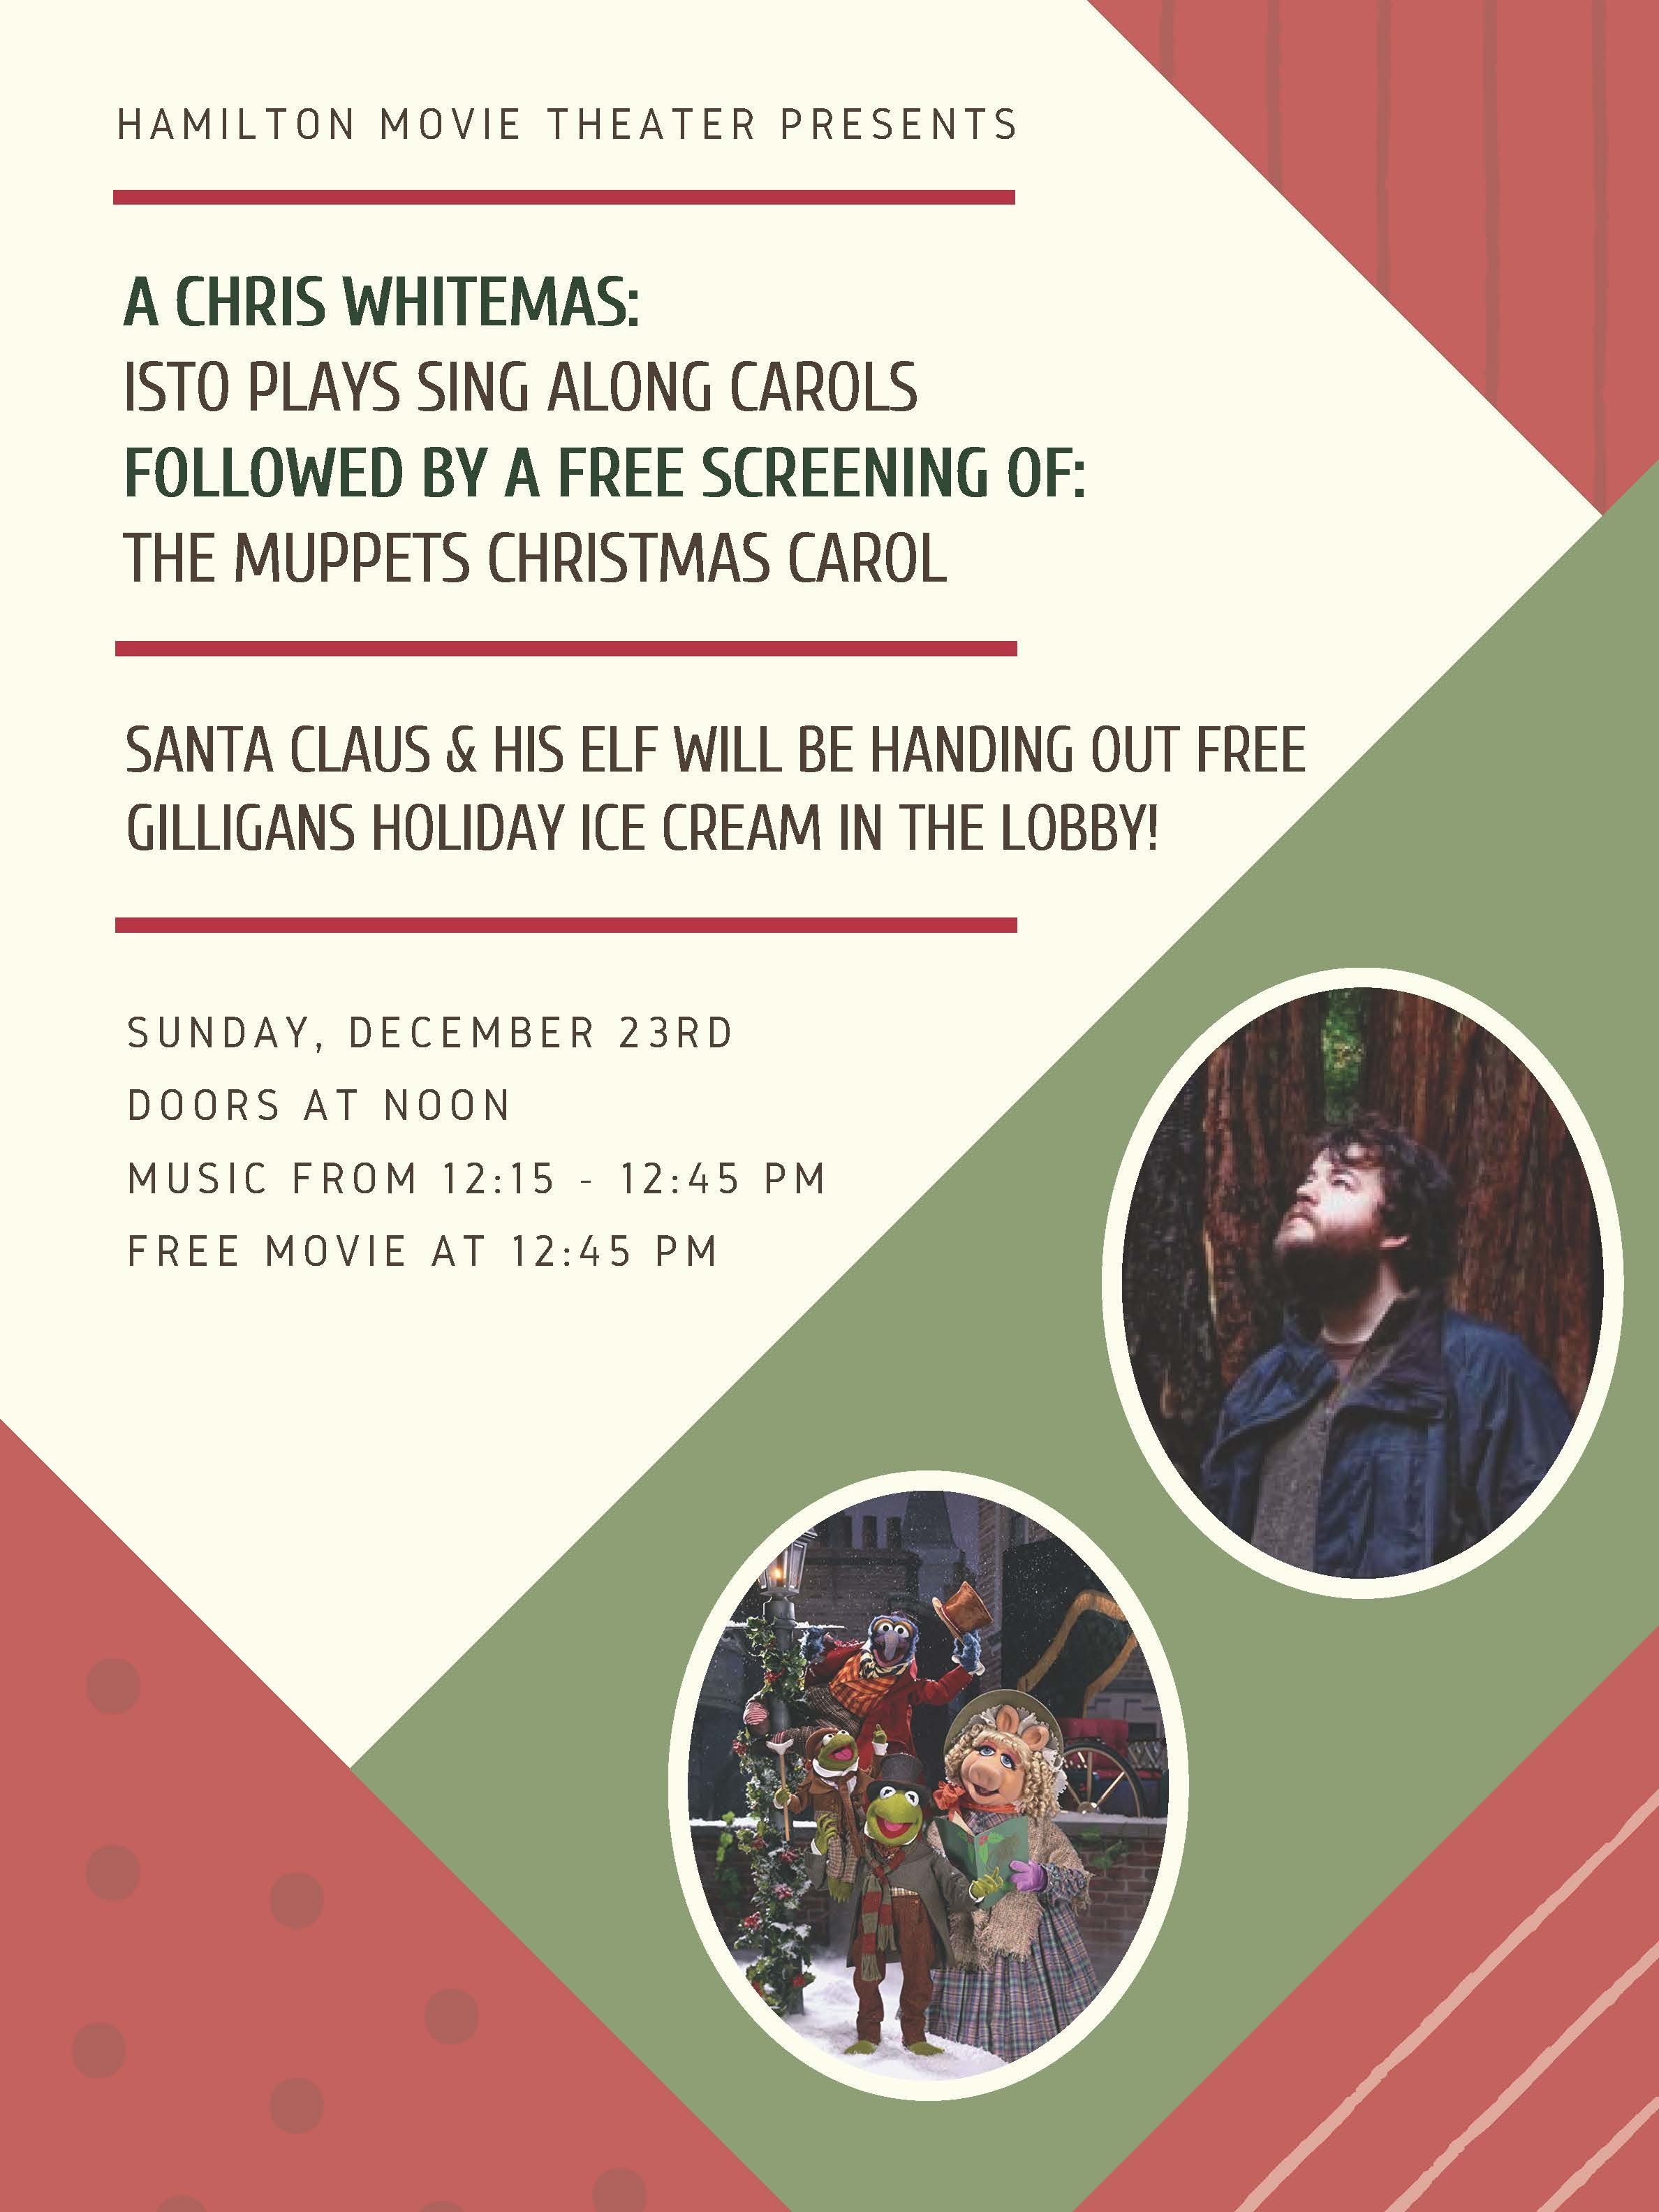 Holiday Theater Fun With The Santa Clause, Muppets,Sing Alongs and ...